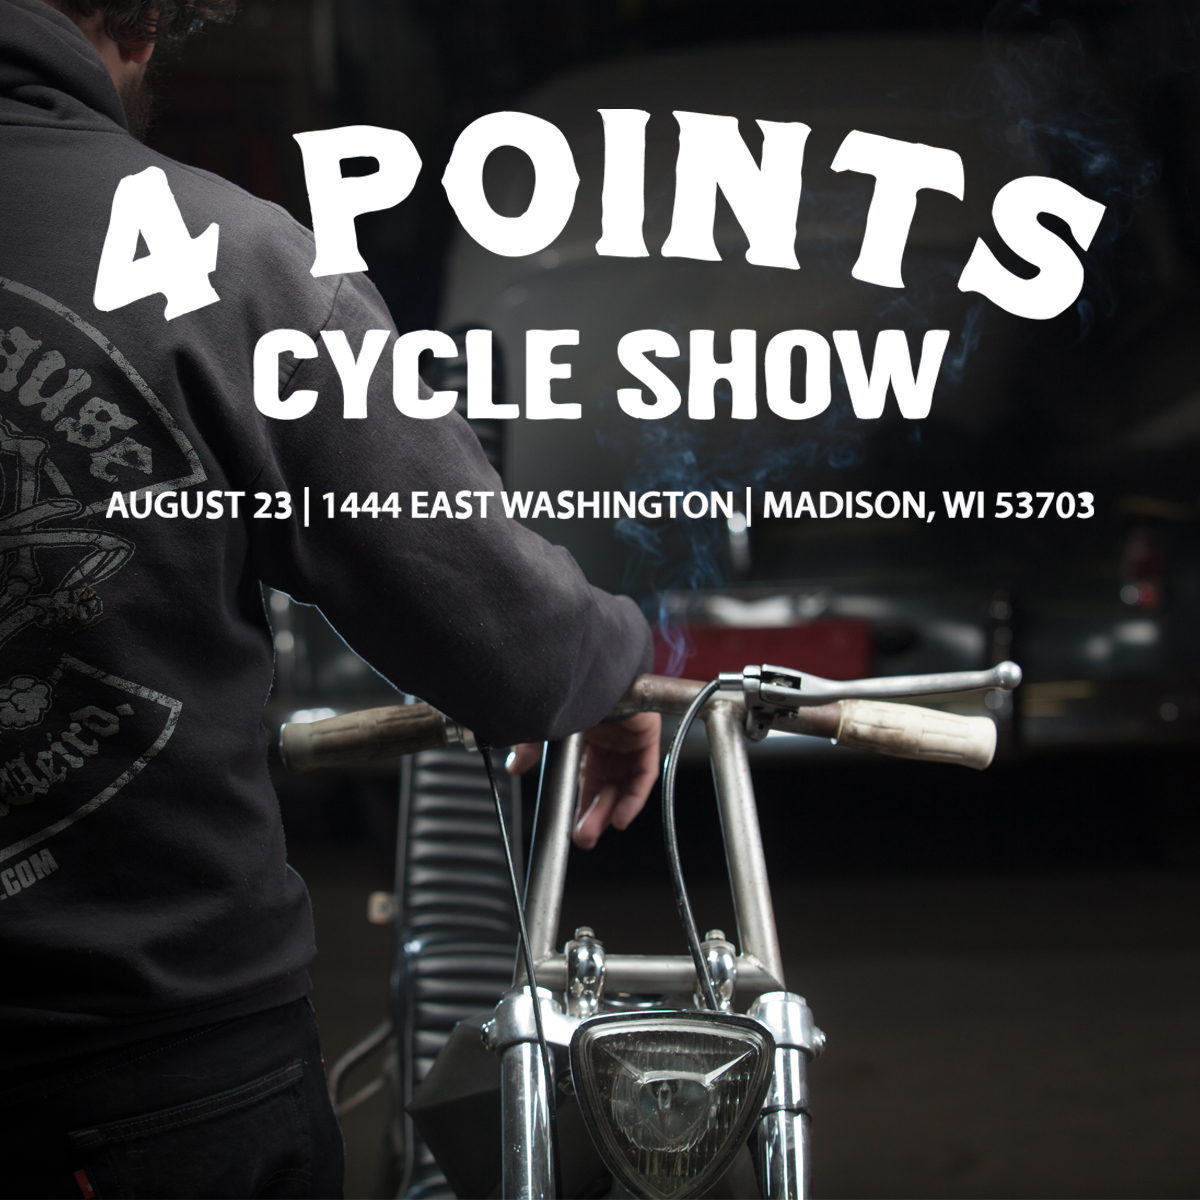 4 Points Cycle Show